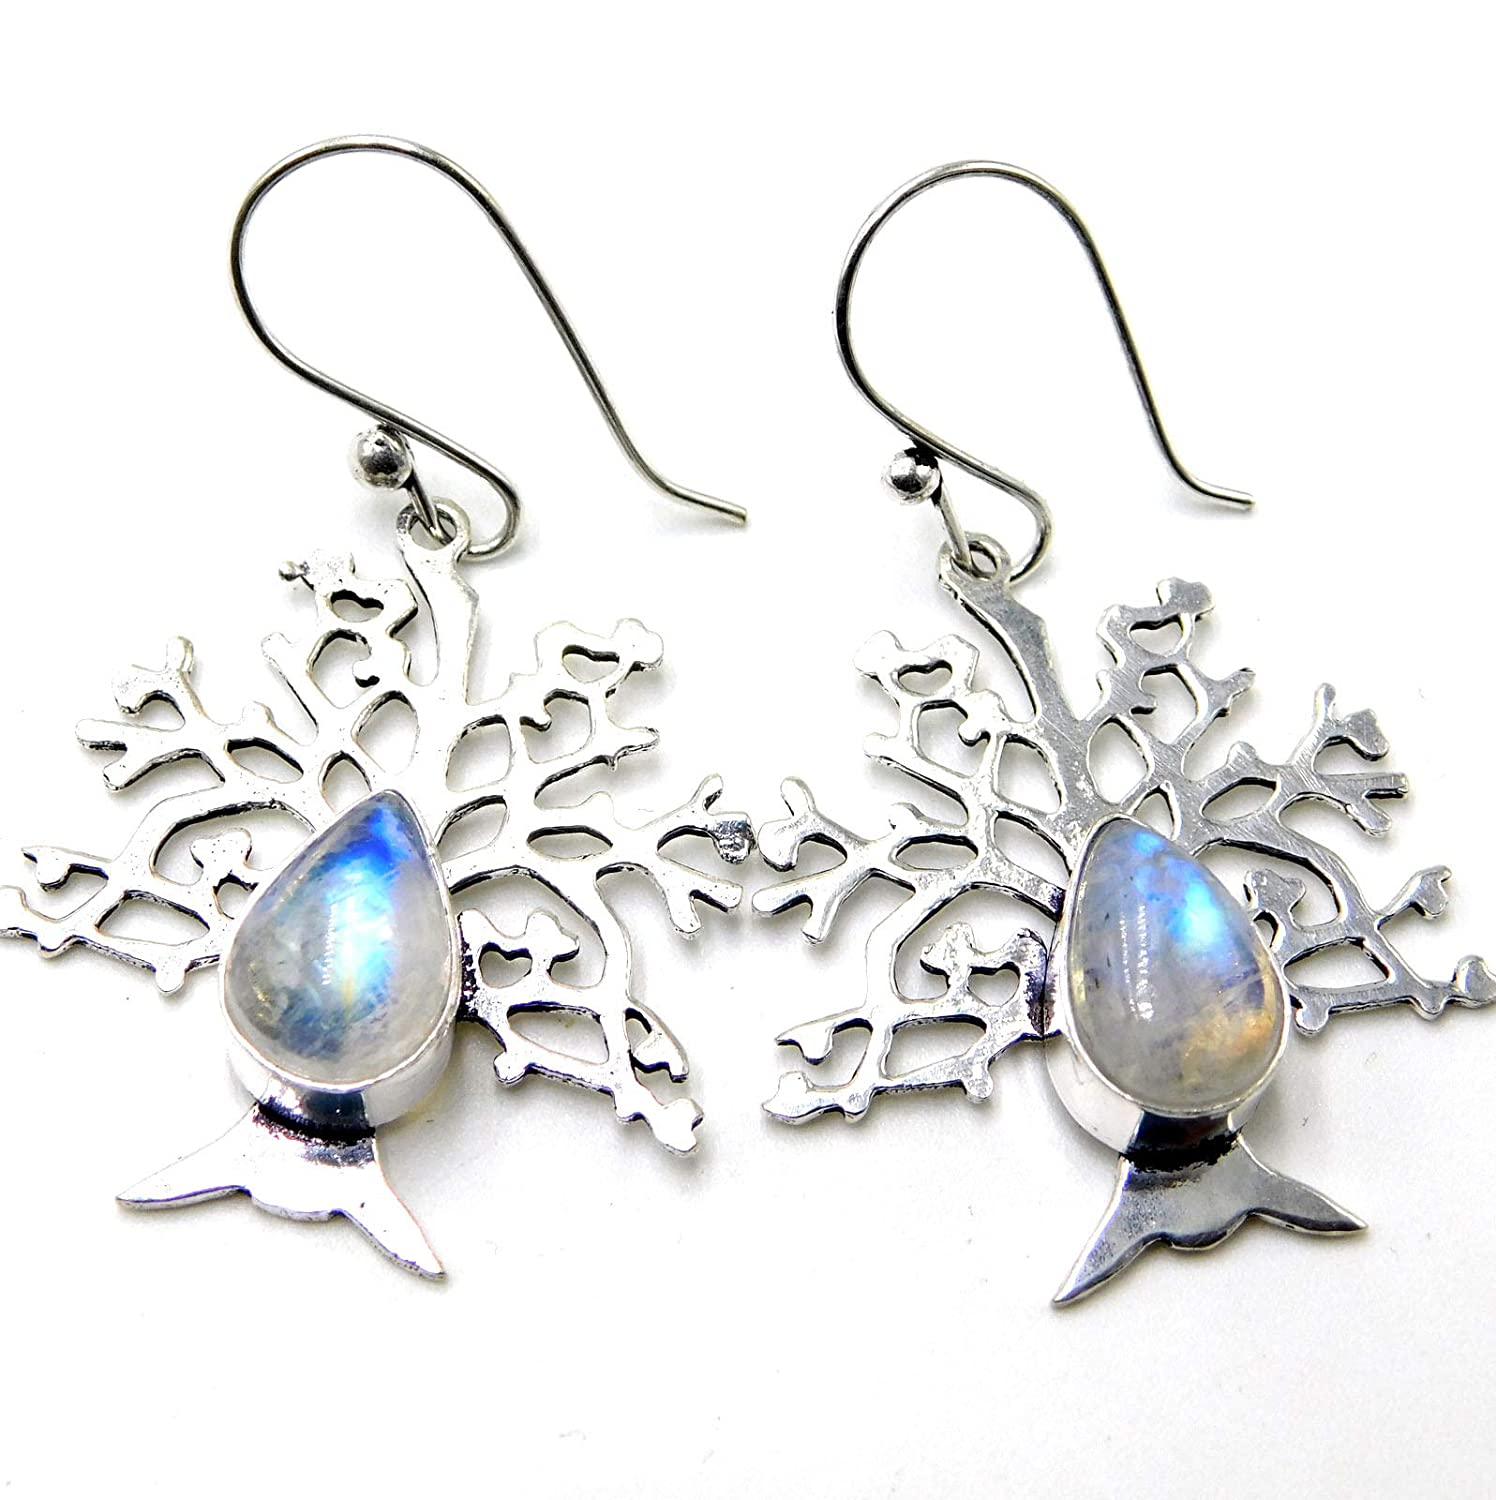 Rainbow Moonstone Tree Leaf Jewelry 925 Sterling Silver Plated Handmade Earrings 7 Gm